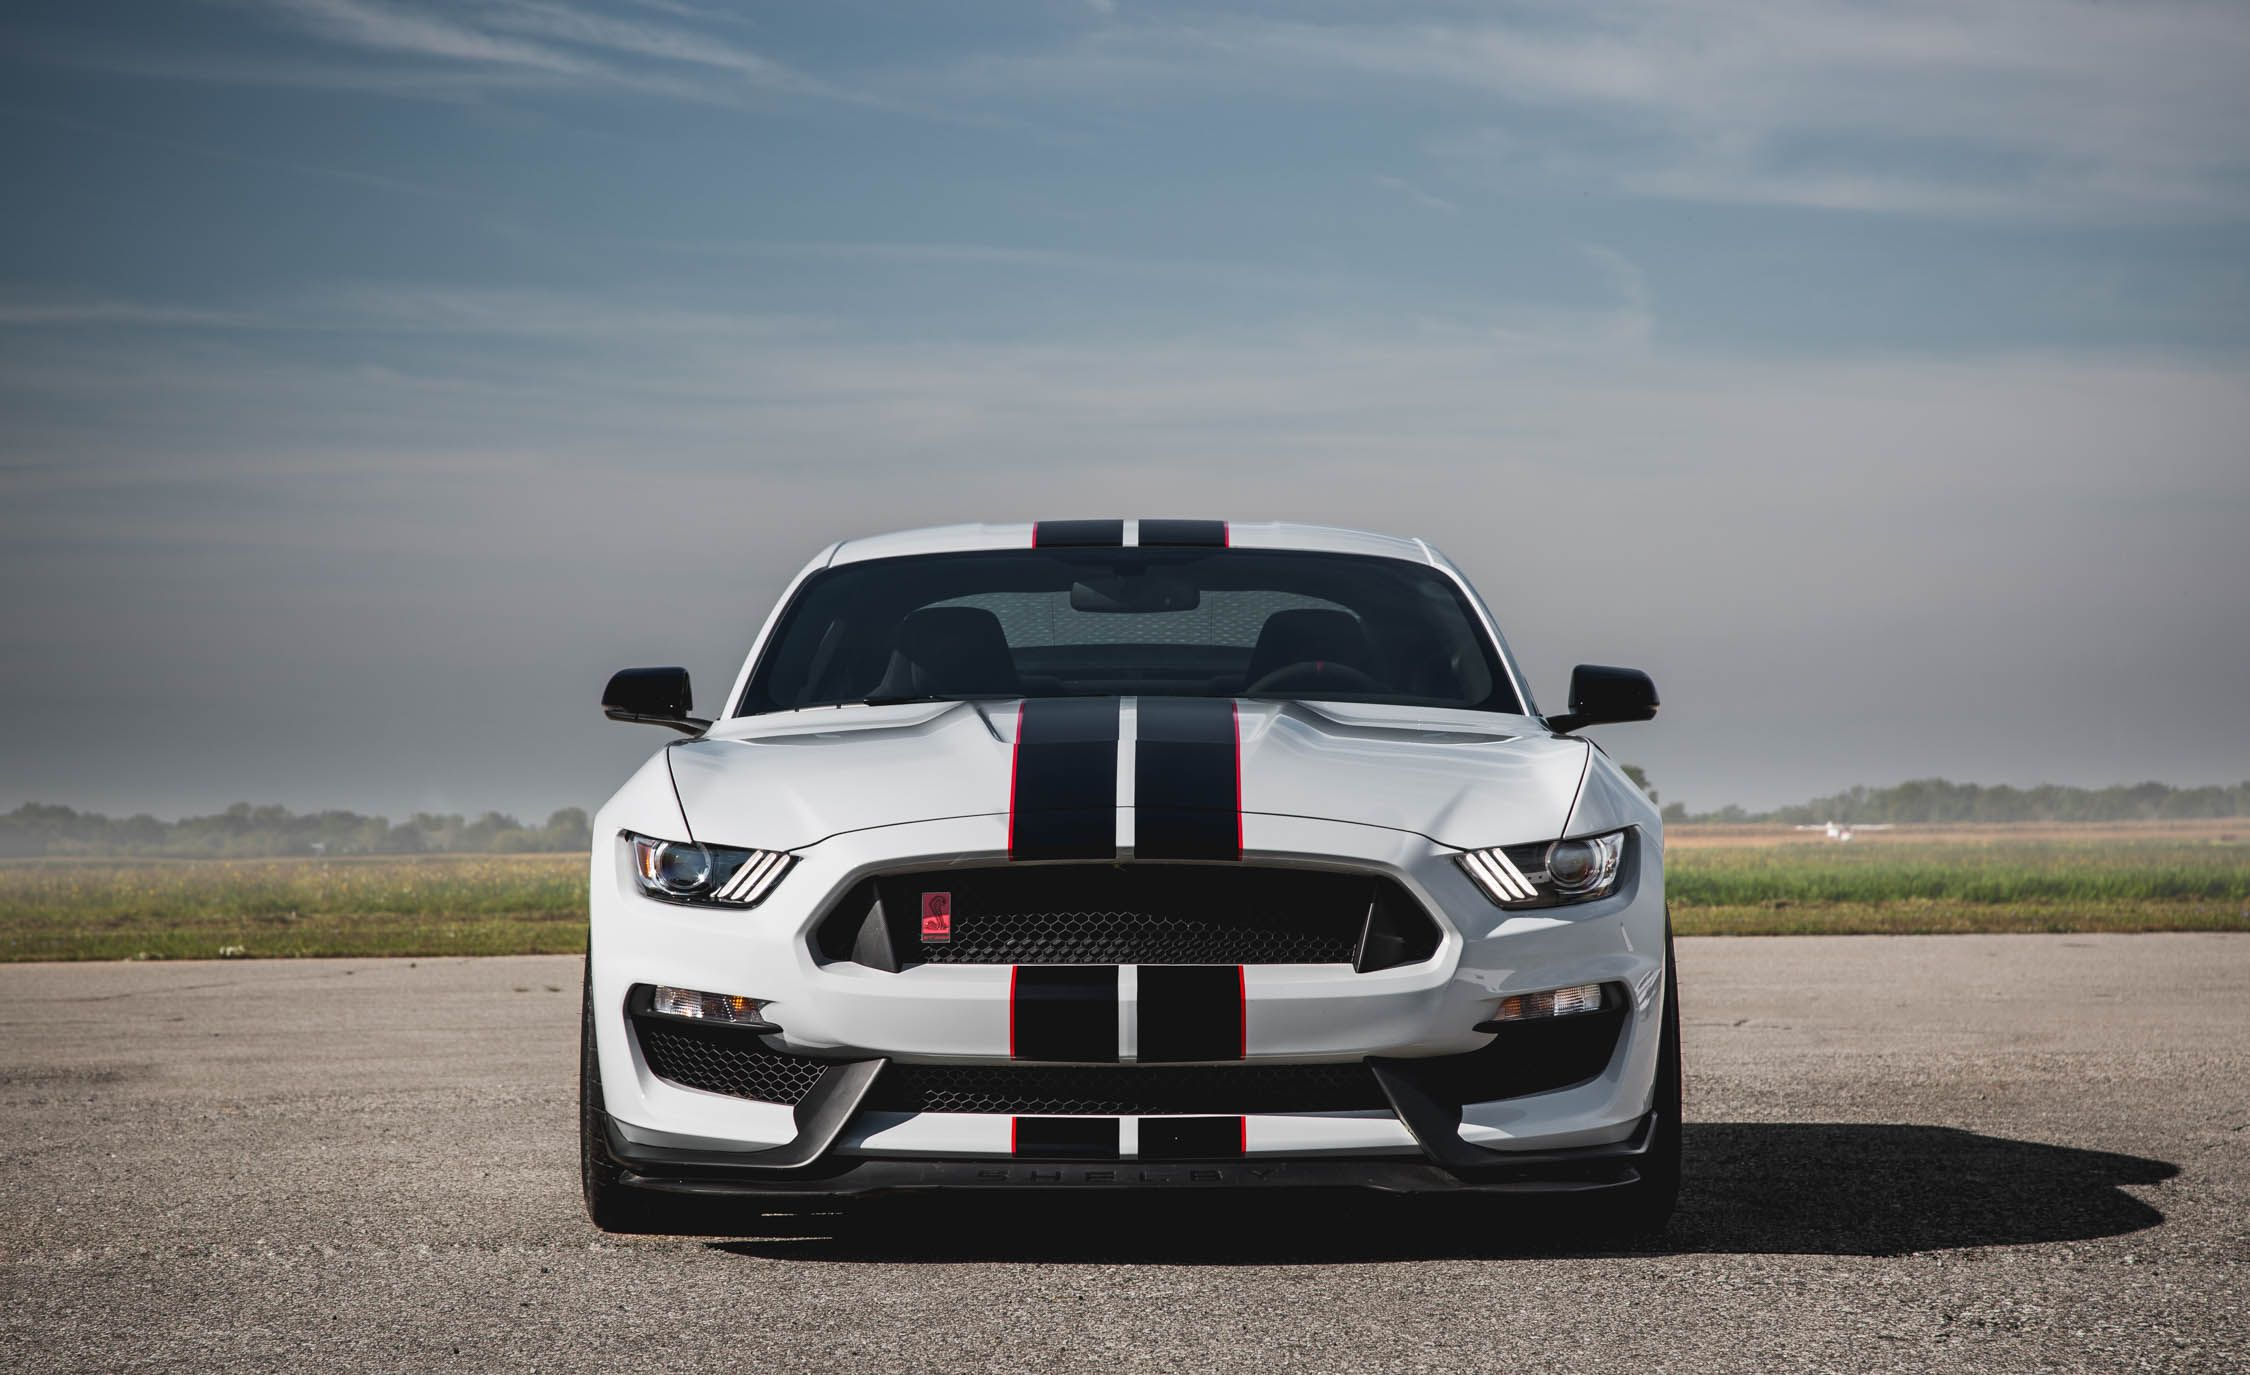 2016 Ford Mustang Shelby Gt350r Exterior Front View 7856 Cars